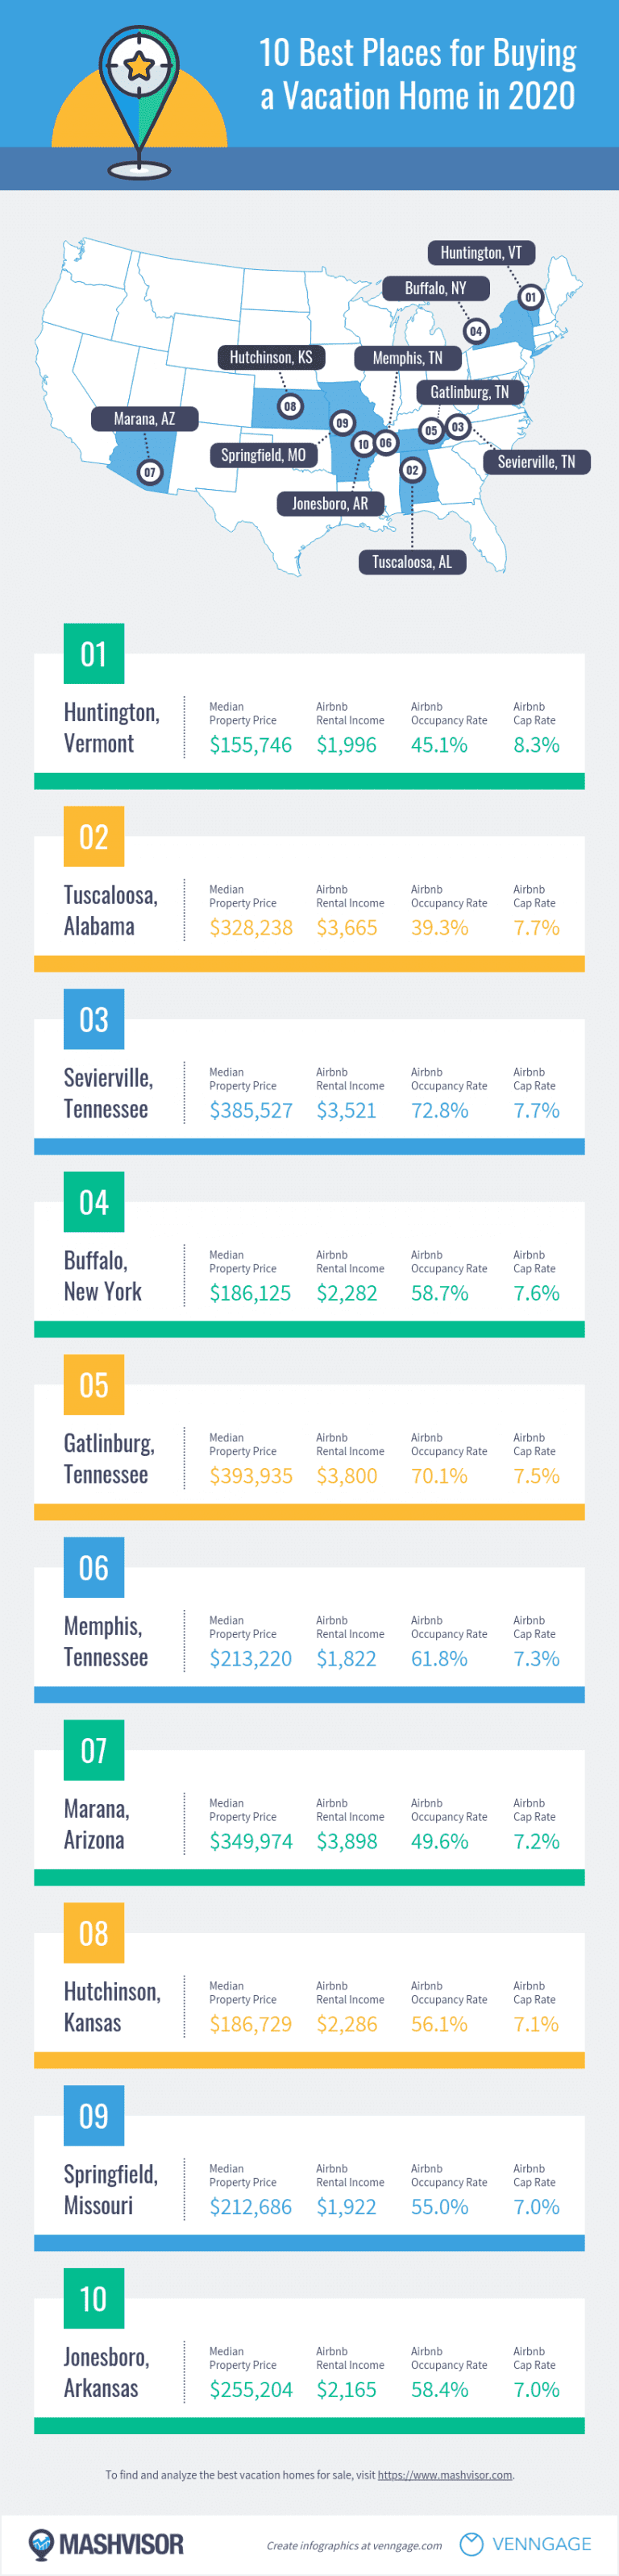 Best Places for Buying a Vacation Home - Real Estate Infographic